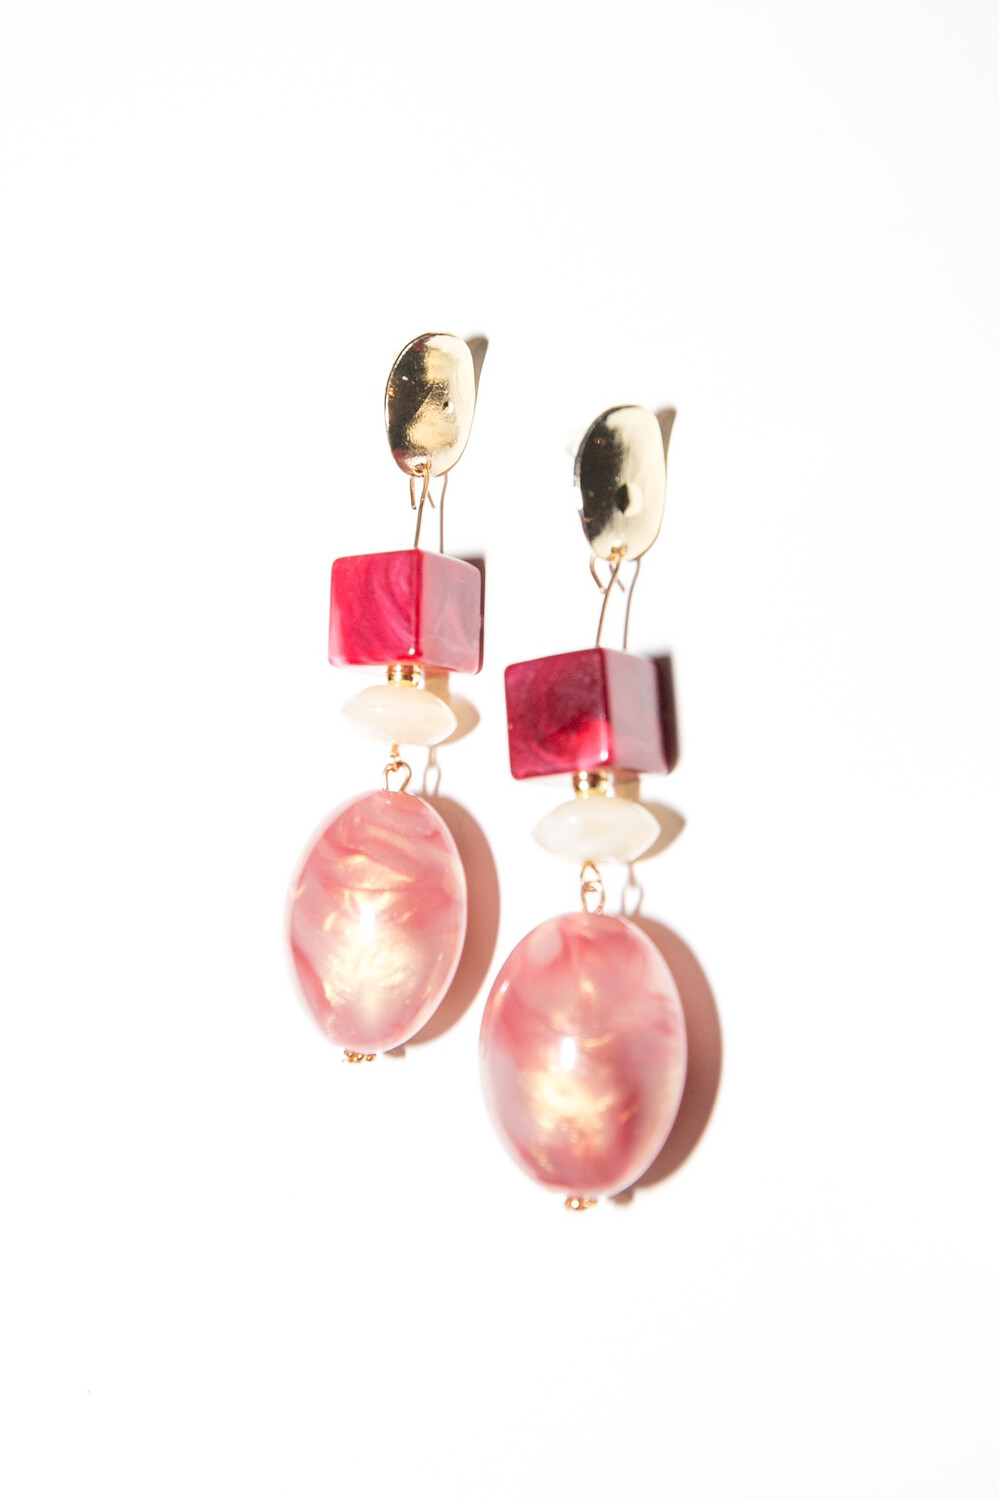 Susie Pink Earrings